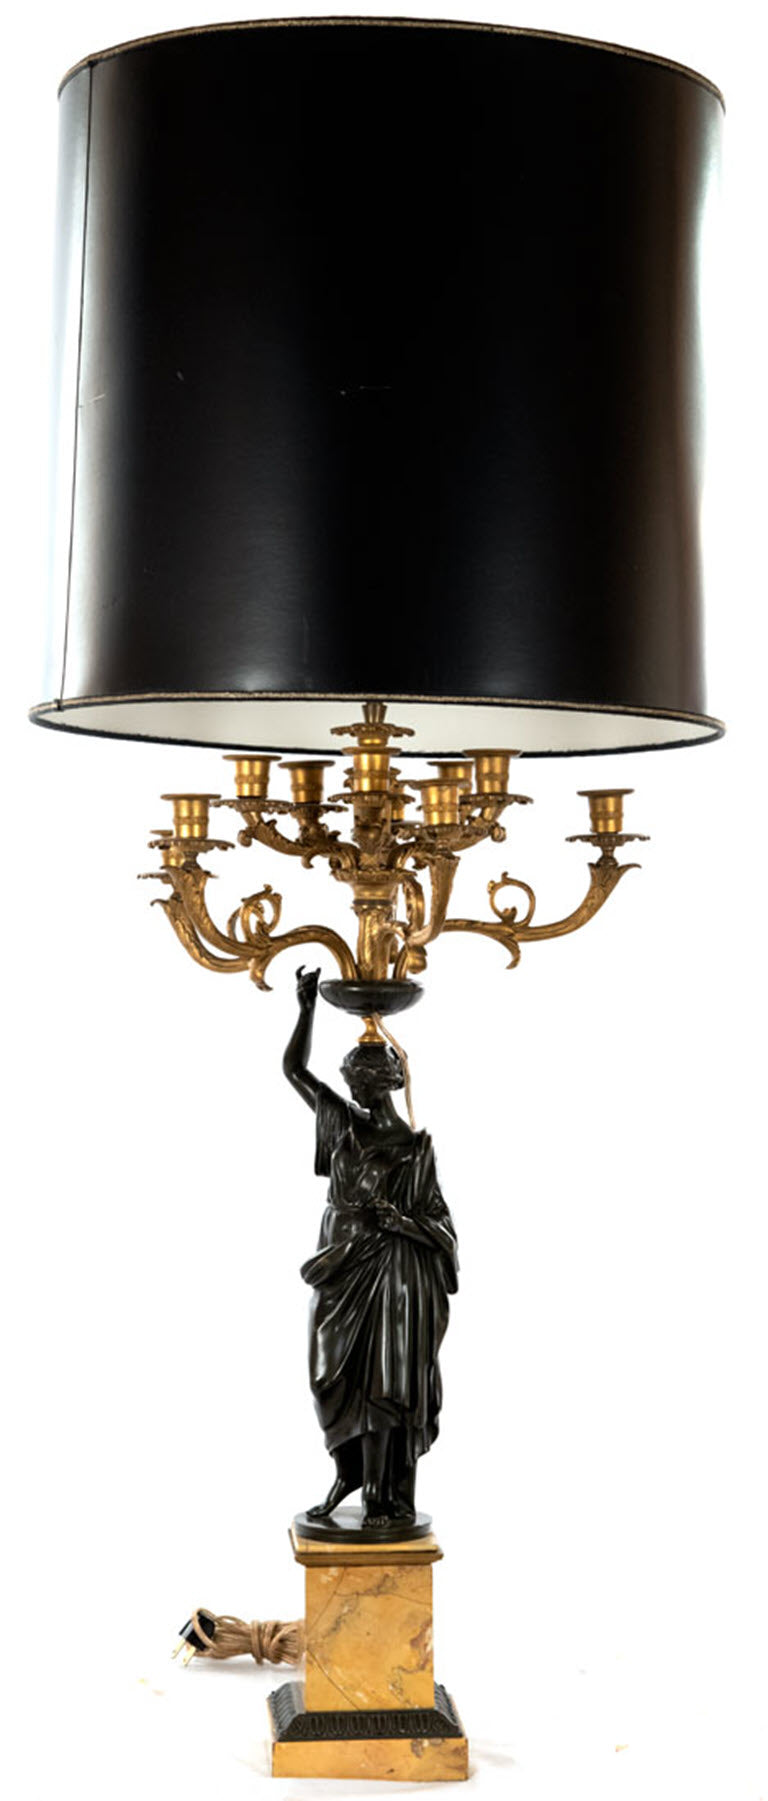 Pair French Bronze and Ormolu Caryatid Candelabra Lamps (c. 1865)